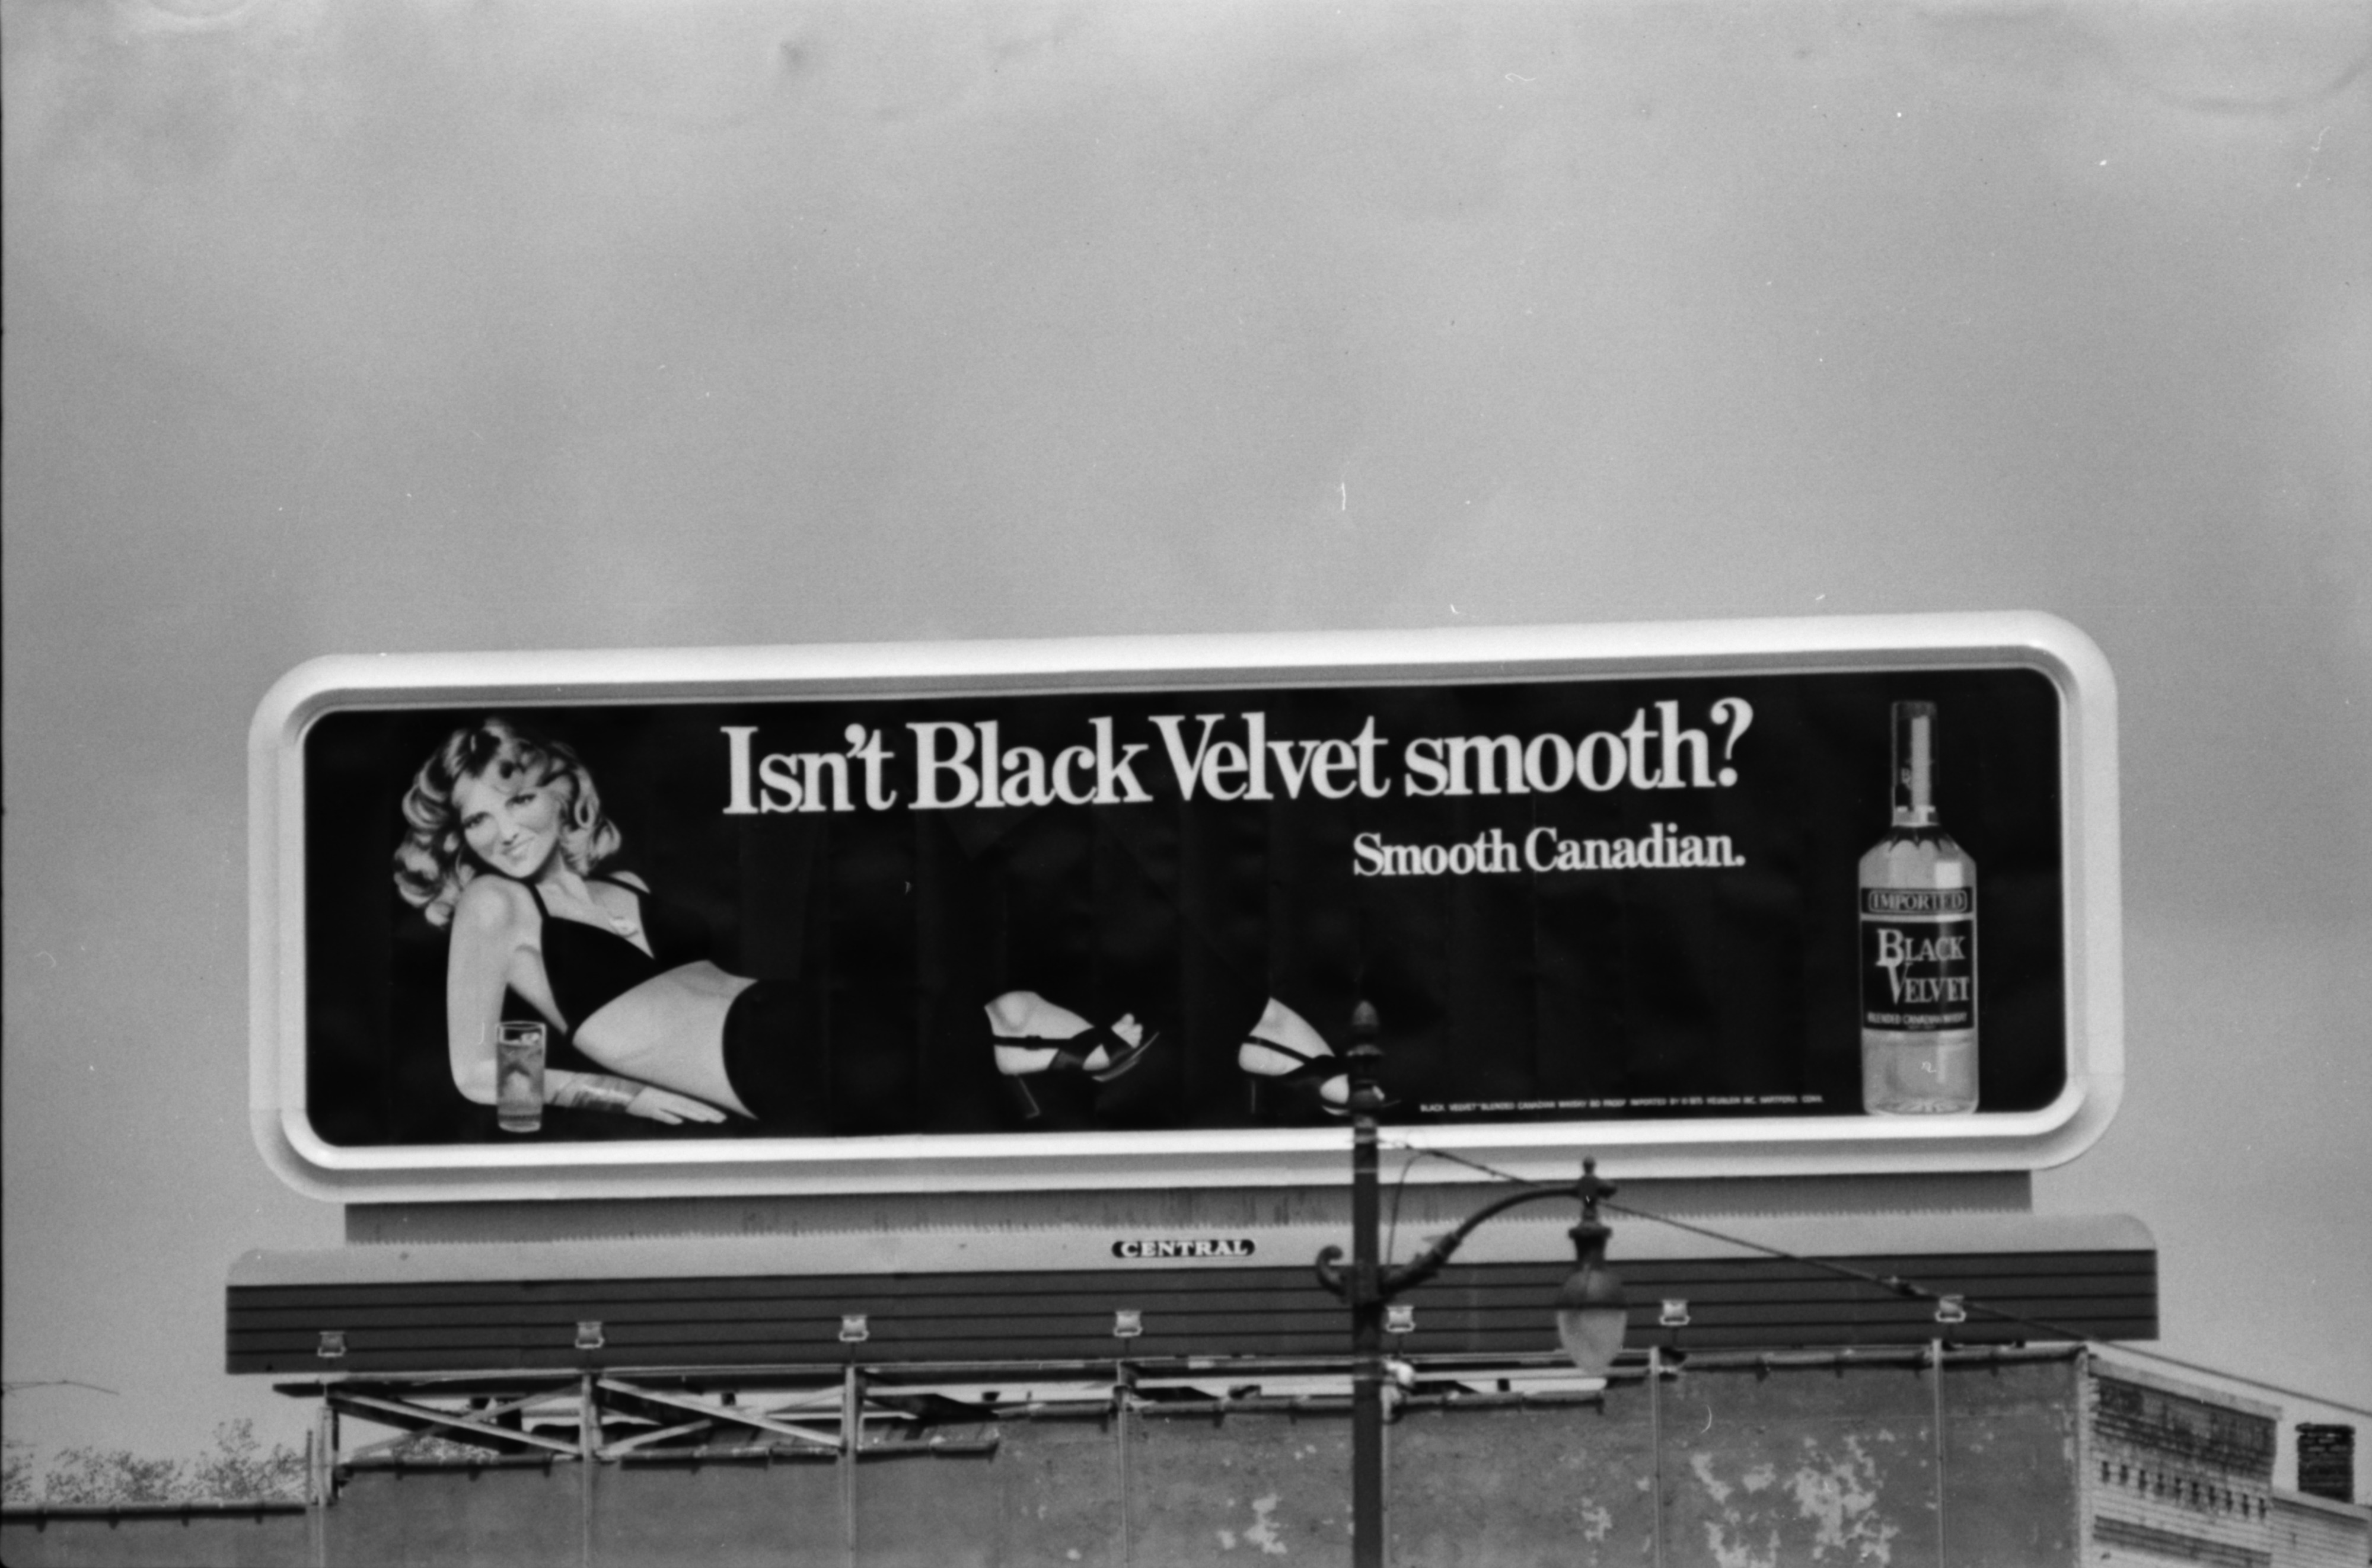 Billboard Advertisement, May 1975 image